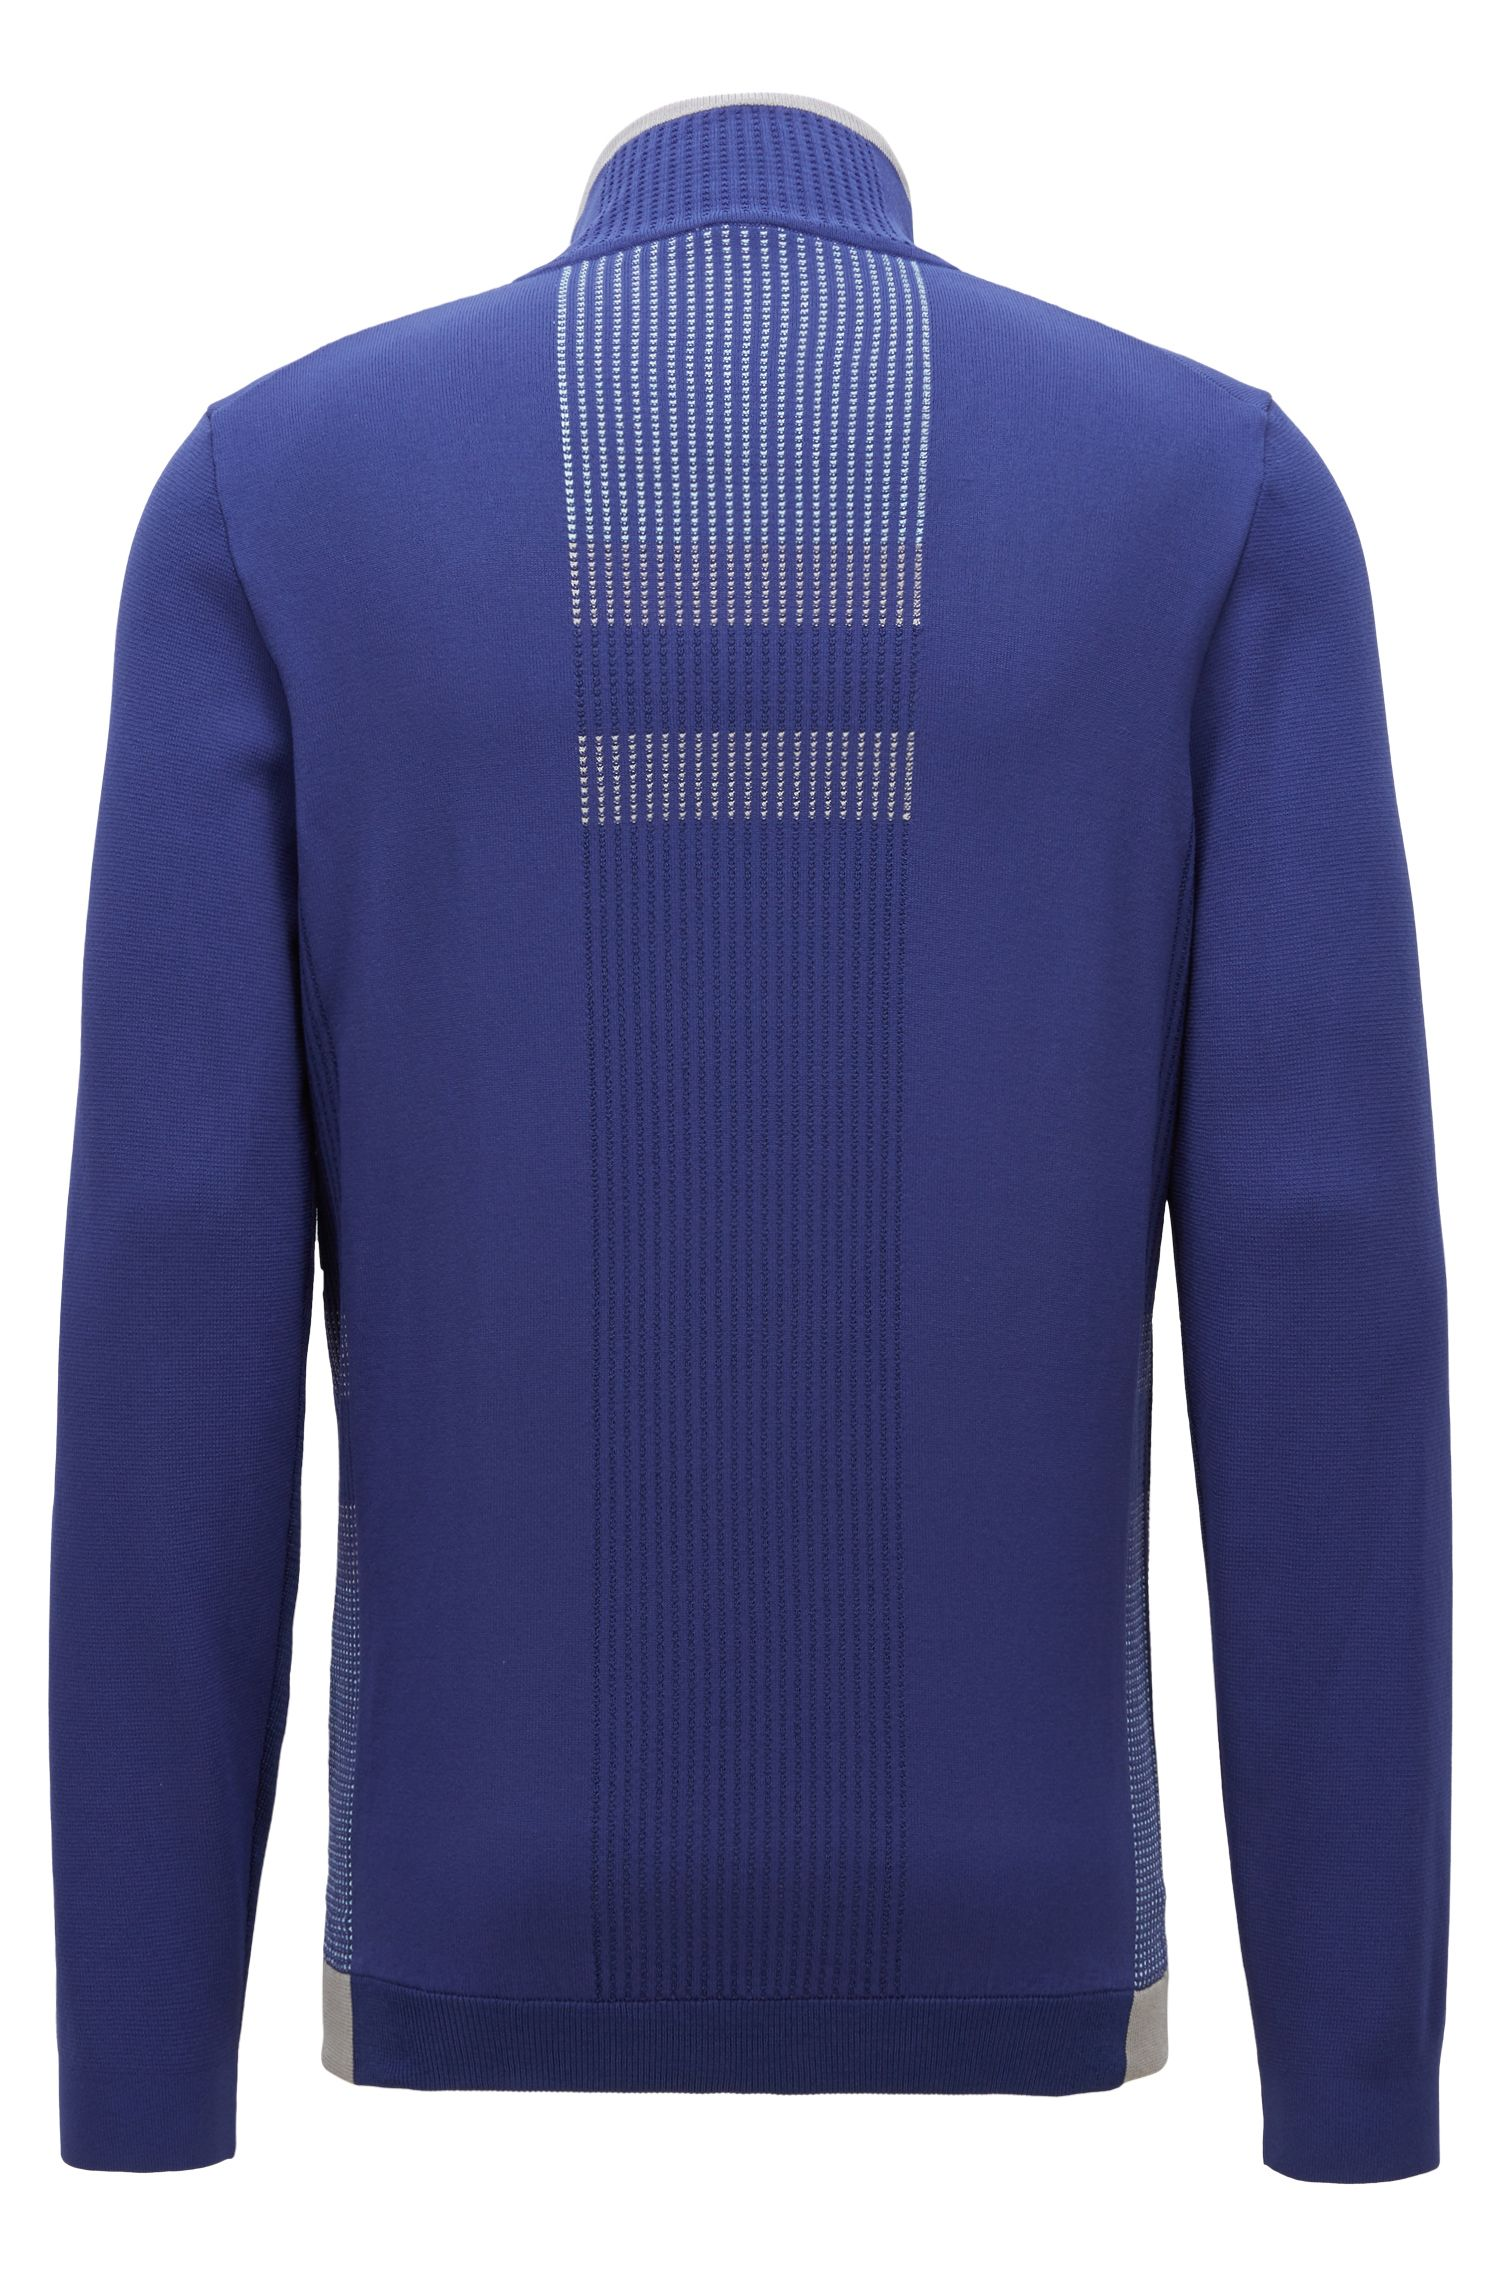 Color-block sweater in stretch fabric with zippered neck